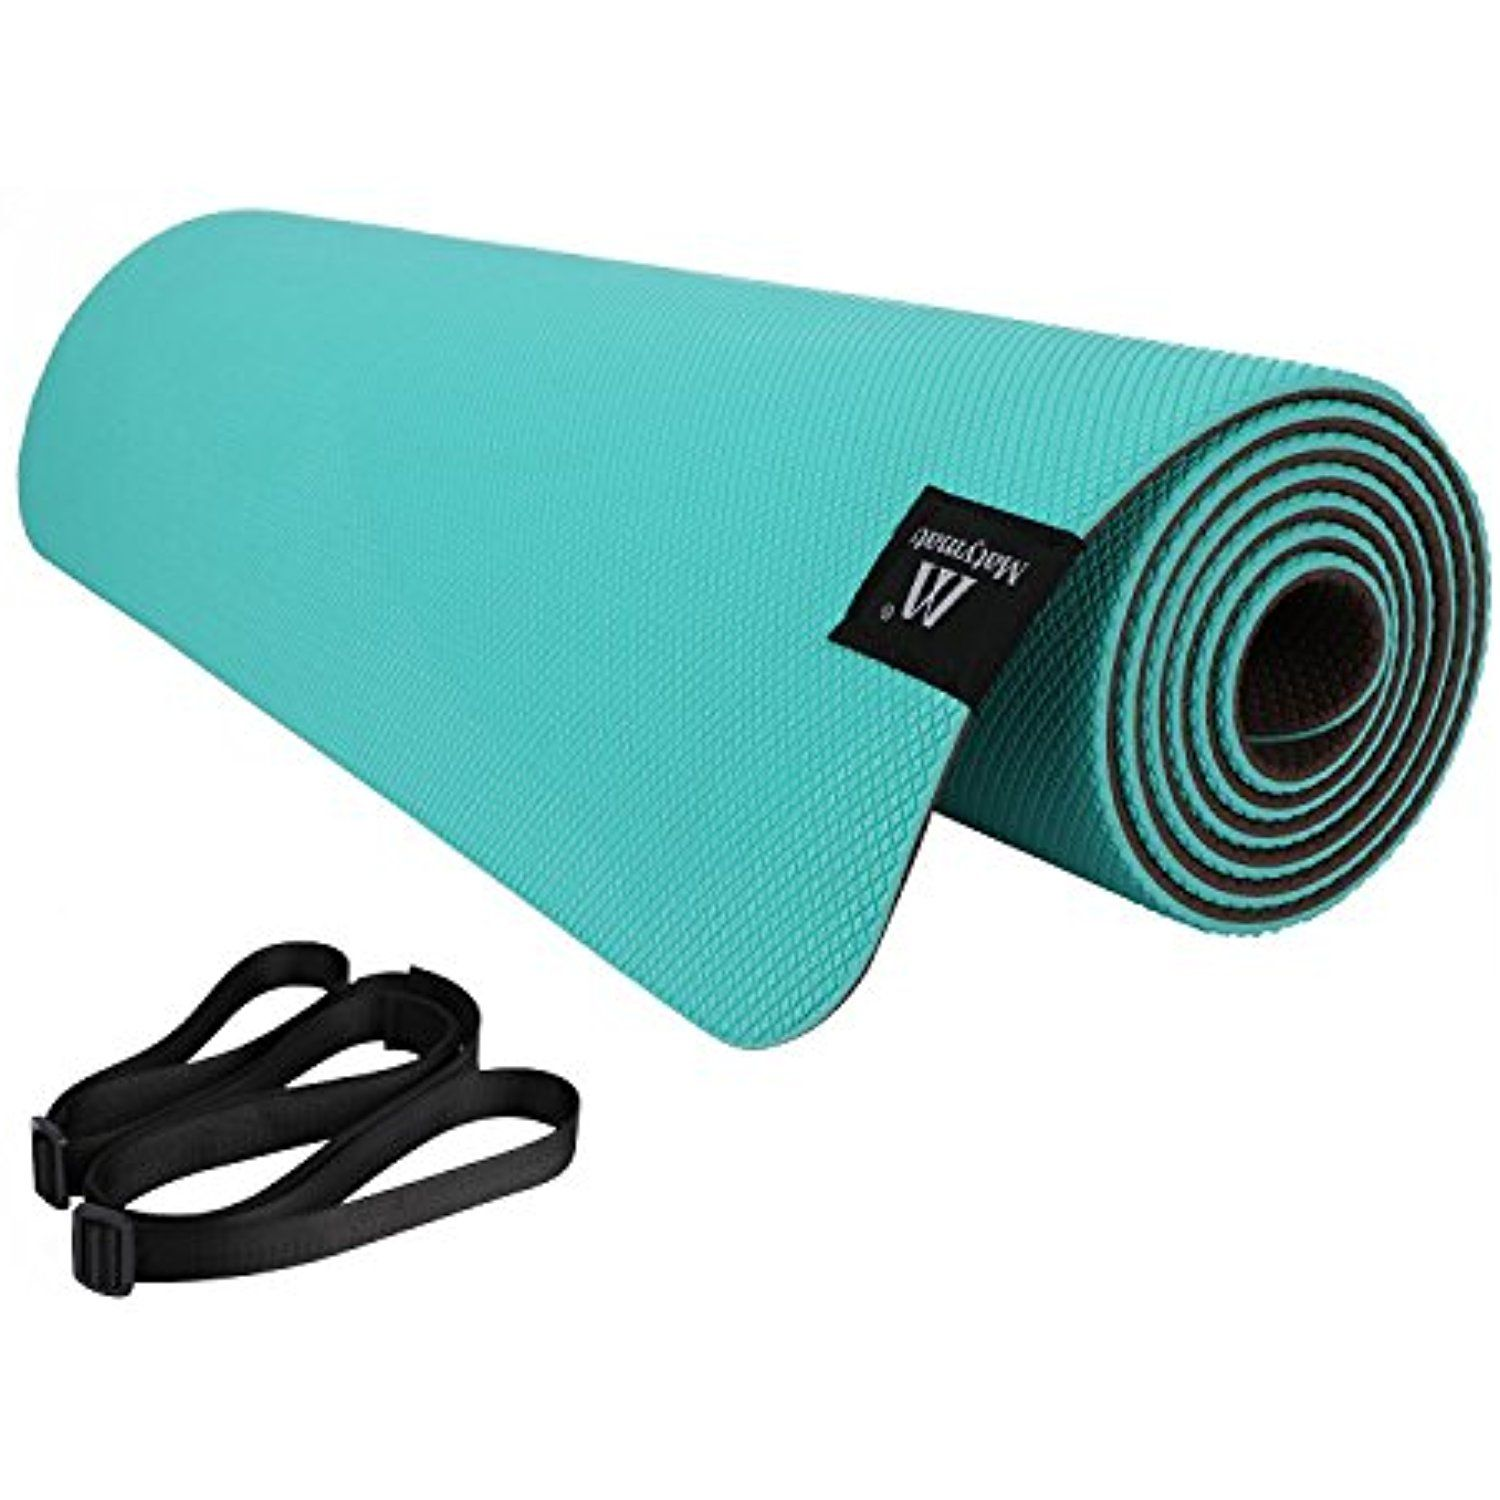 equipment mat out work non thick komodo black exercise mats slip sports yog gym workout